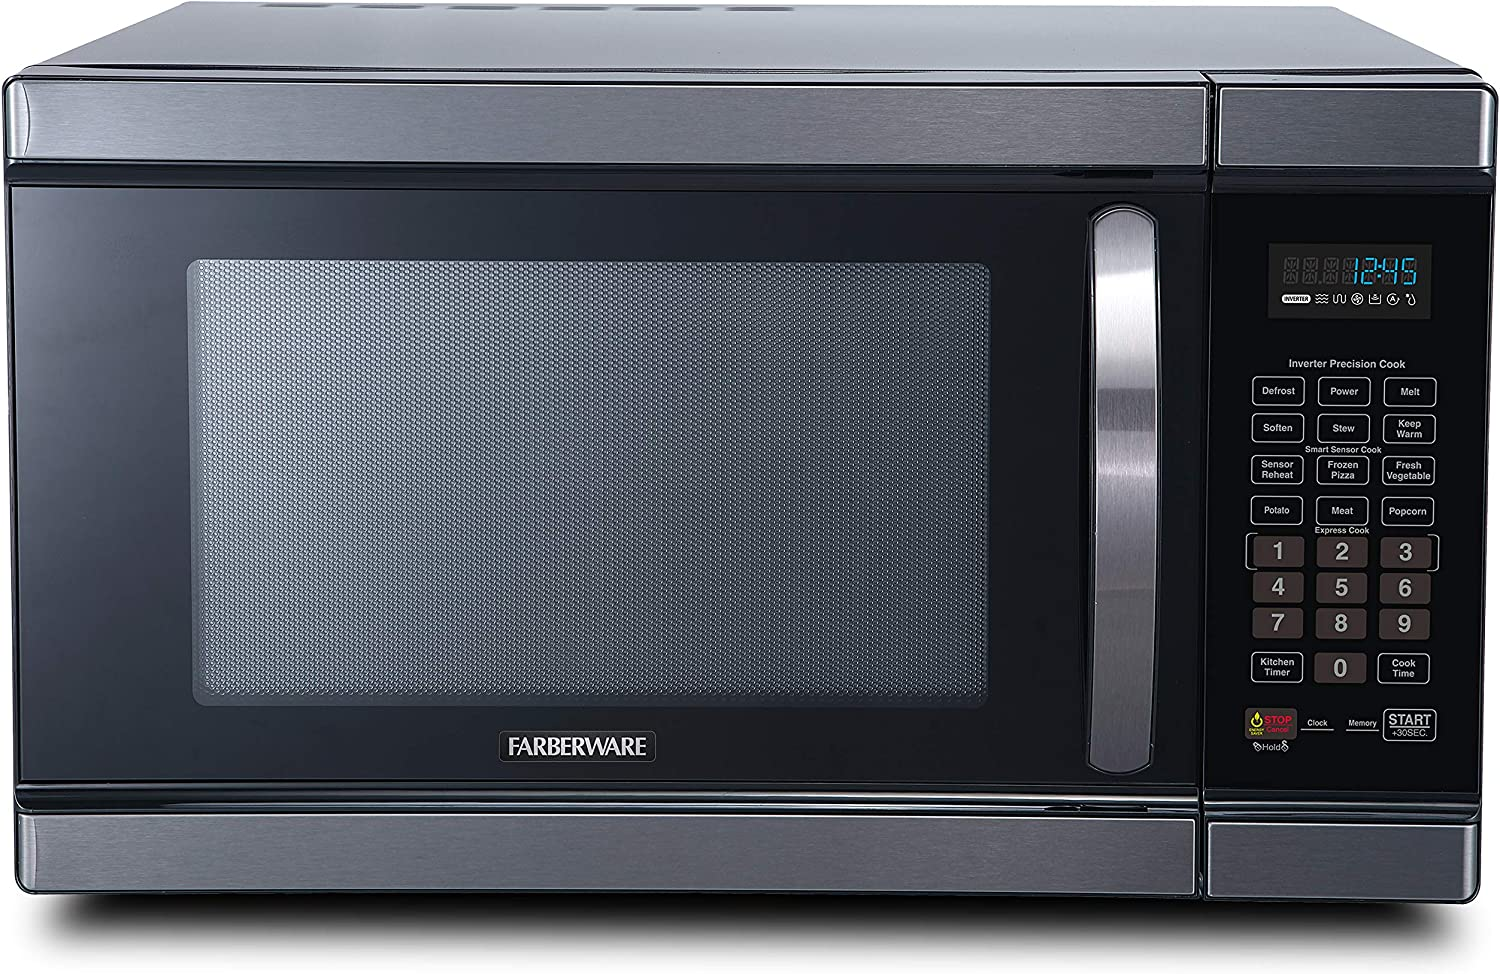 Farberware Black FMO11AHTBSJ 1.1 Cu. Ft 1100-Watt Microwave Oven with Smart Sensor Cooking, Inverter Technology, ECO Mode and Blue LED Lighting, Black Stainless Steel